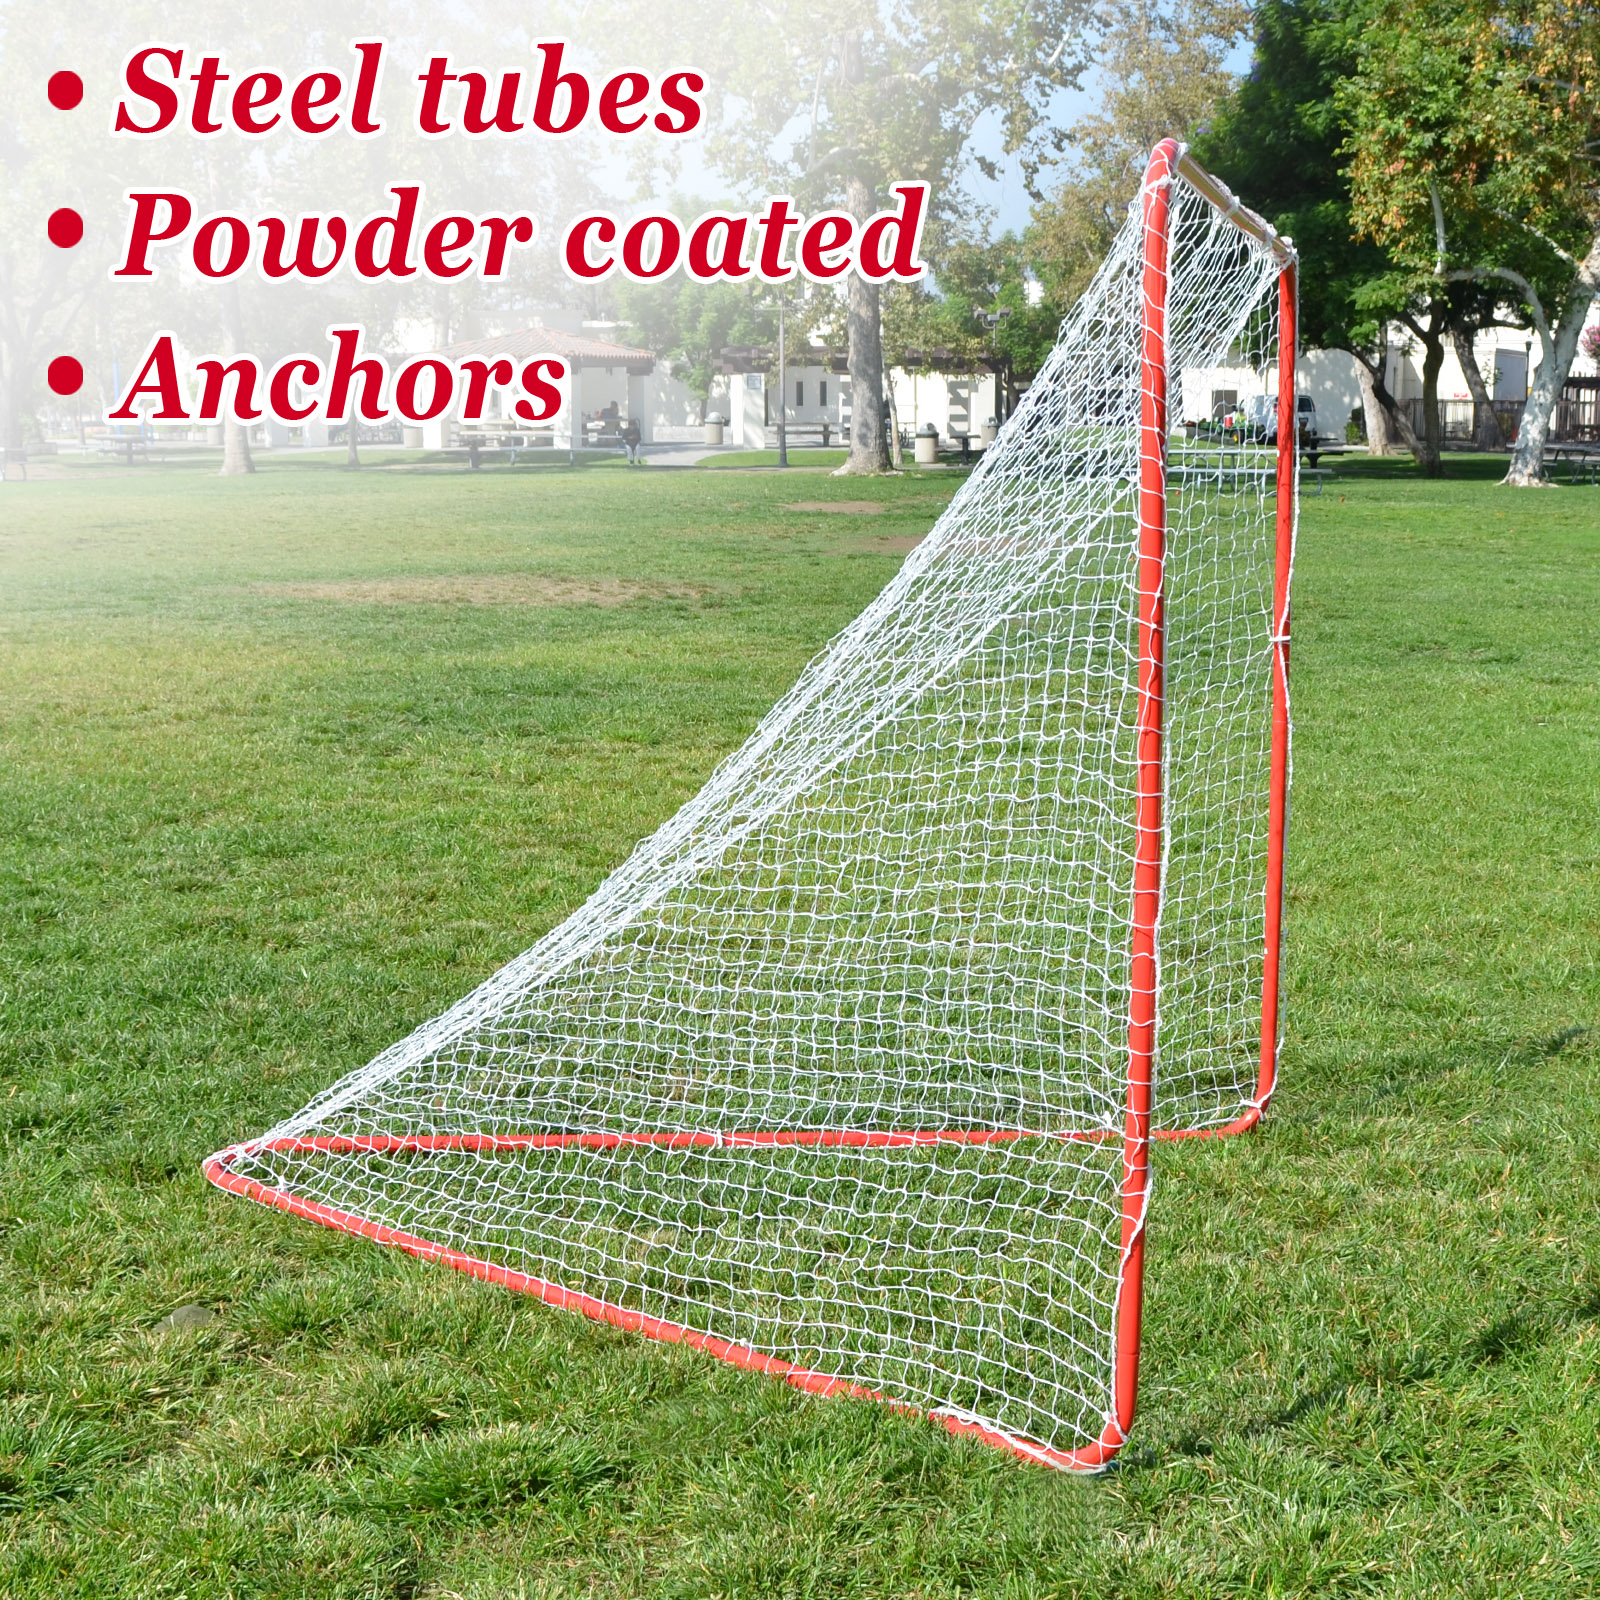 Strong Camel New Portable Lacrosse Practice Net 6' X 6' X 7' Quick Set Up Lacrosse Goal by Sunny Outdoor Inc